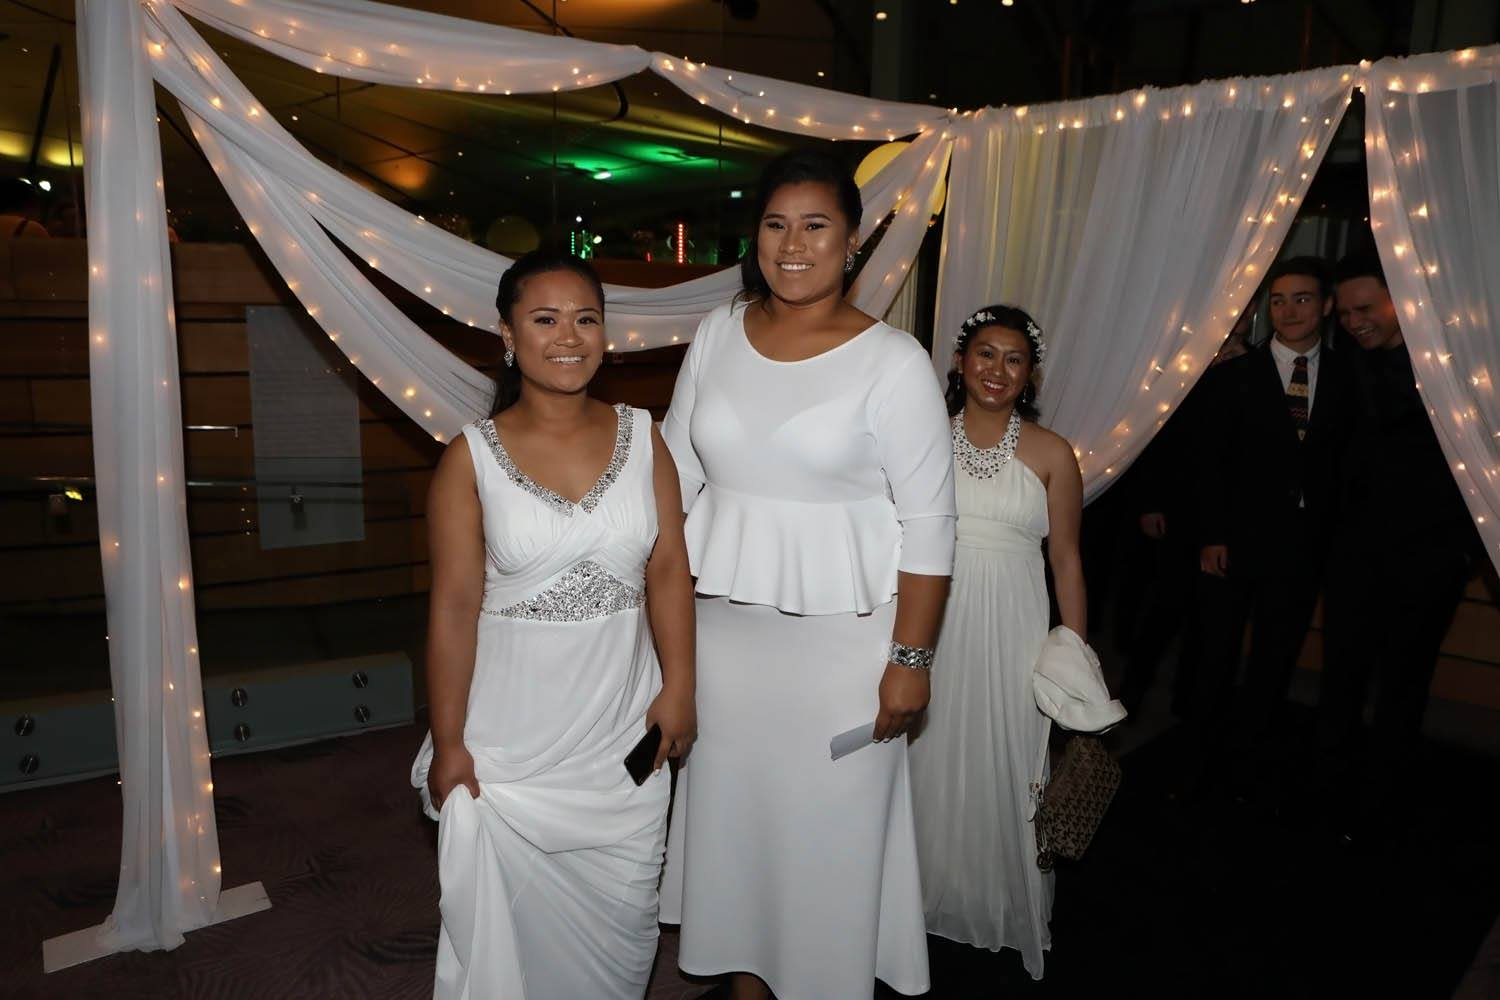 Women dressed in white at an event